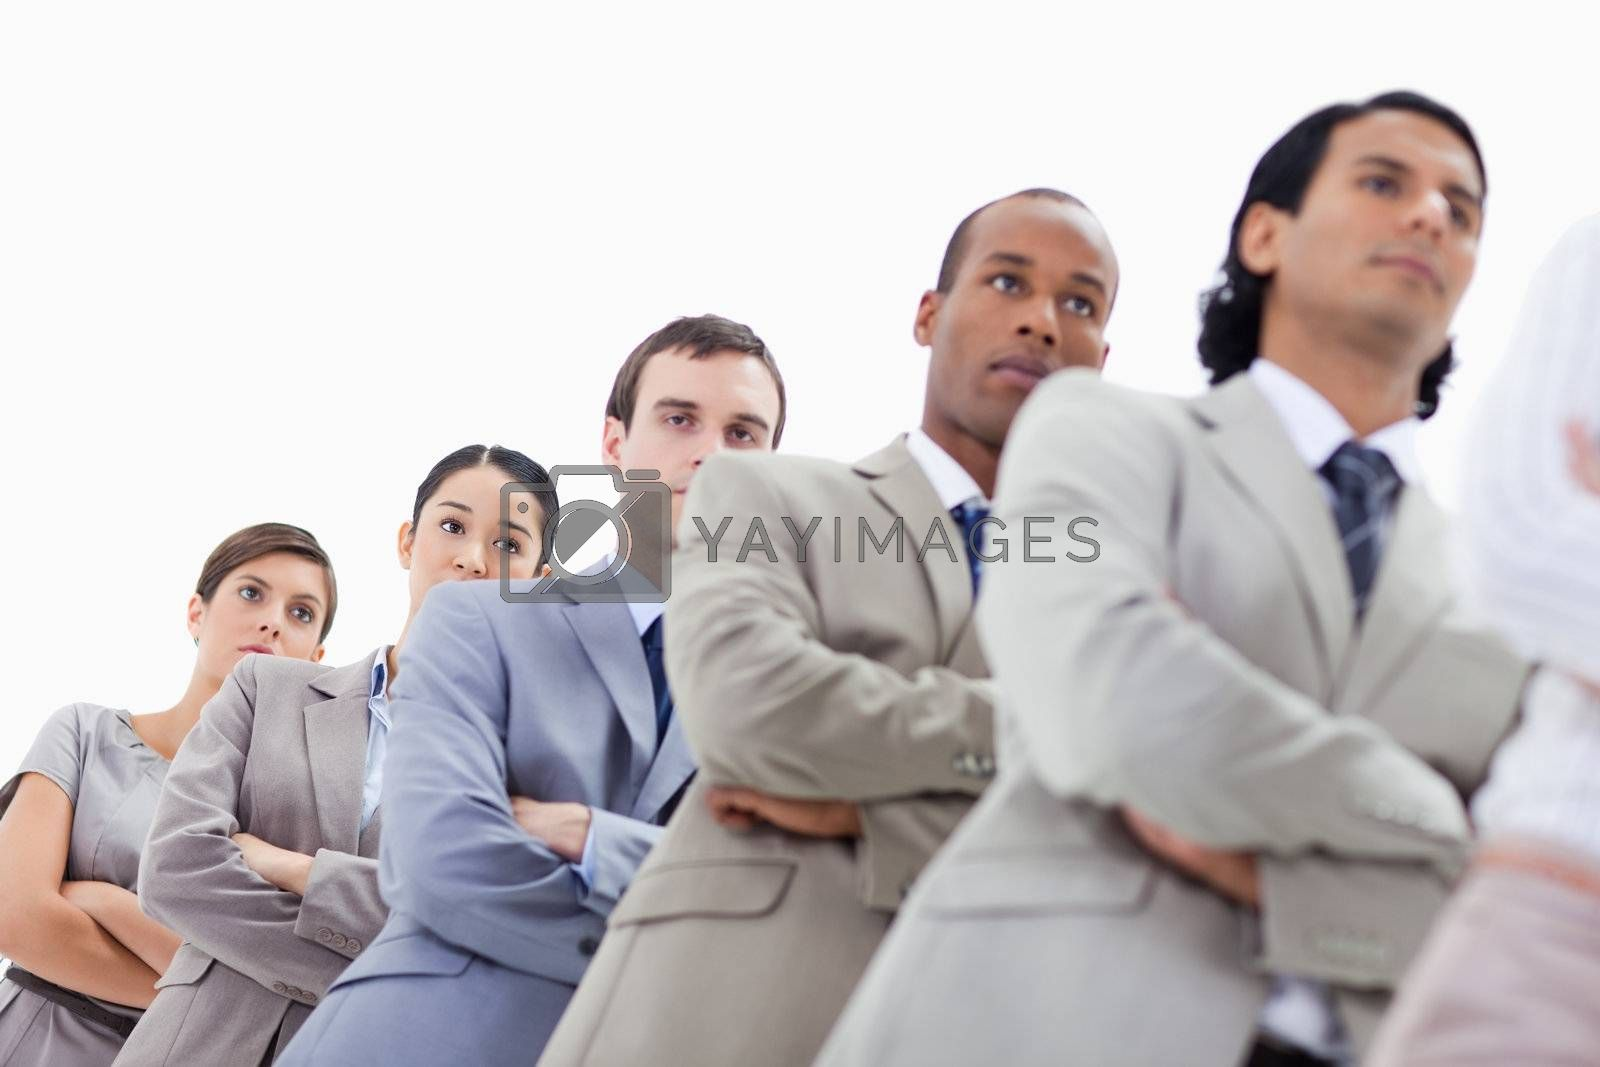 Low-angle shot of people dressed in suits crossing their arms in a single line with focus on the last two women